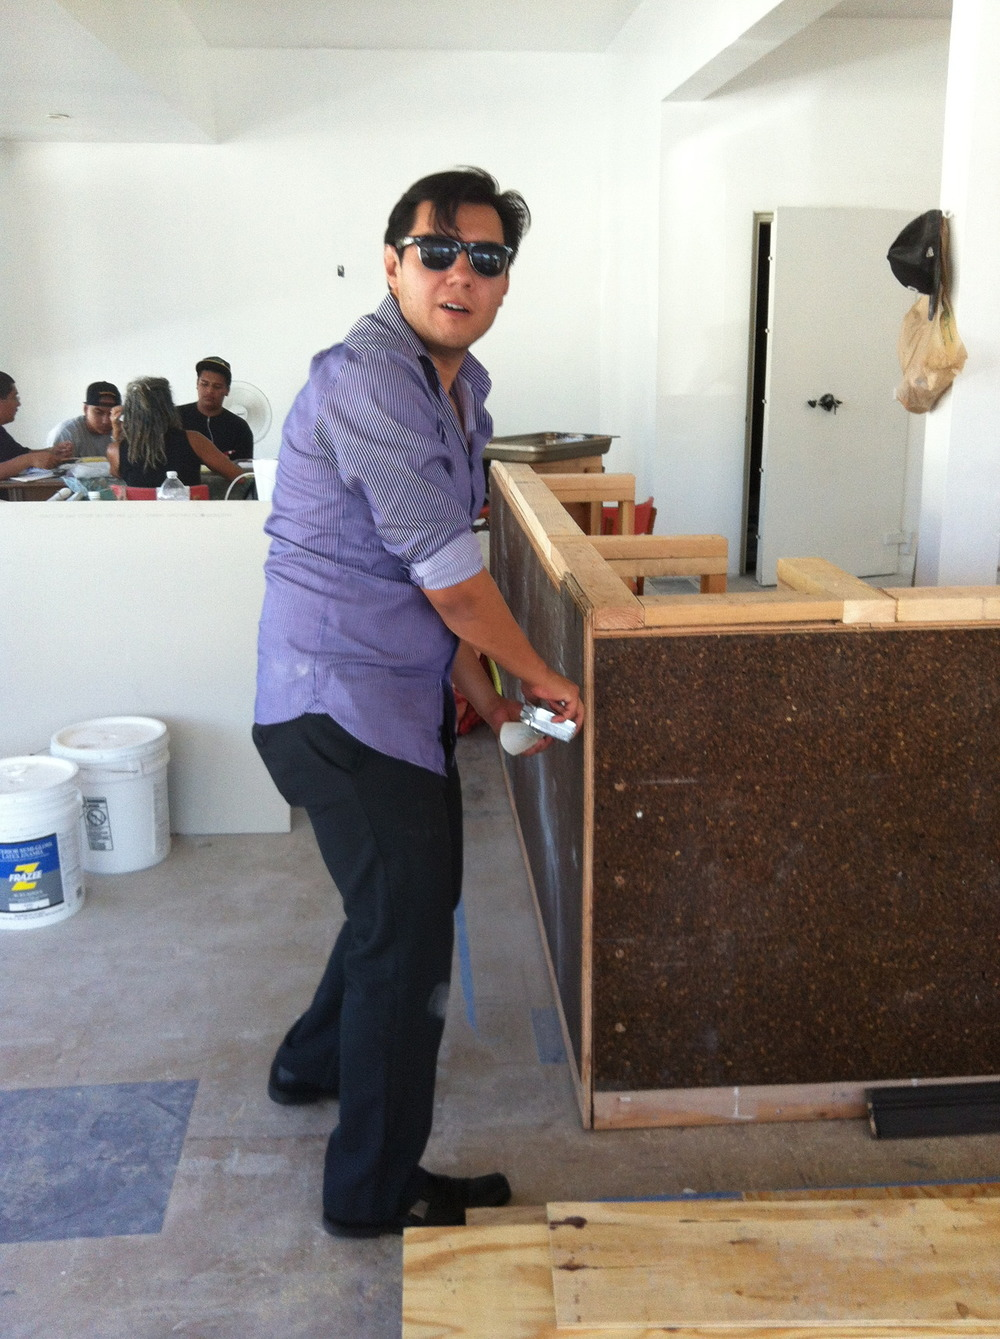 Art Team leader > Jaime Guerrero measuring up for the upcoming artwork on our floor - It's going to be awesome !!!